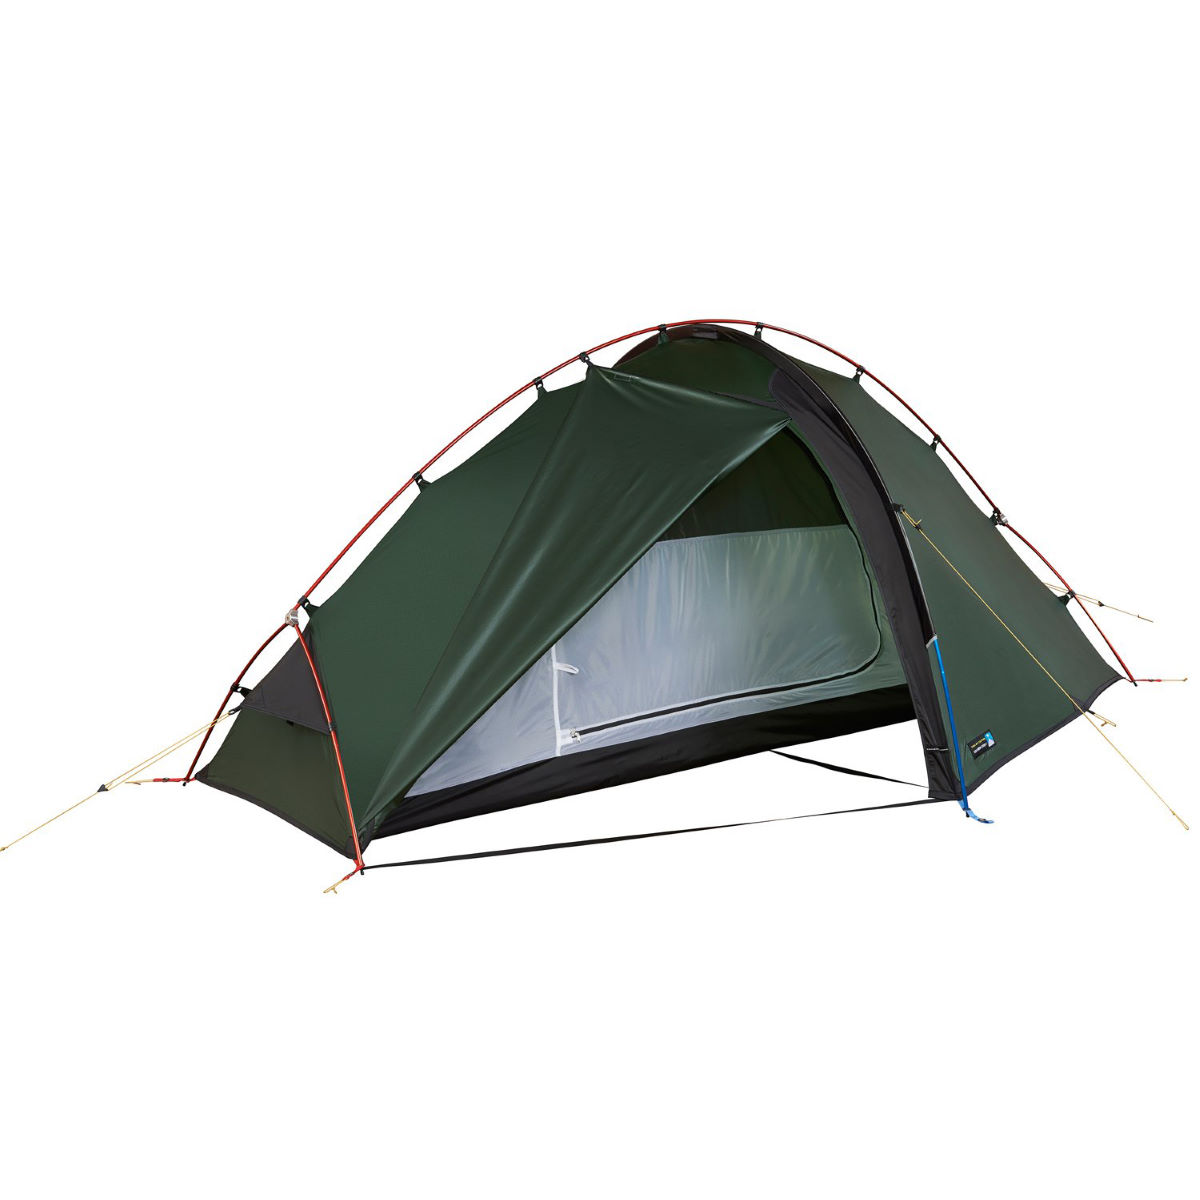 Terra nova southern cross 1 tent tents review - Terras tent ...